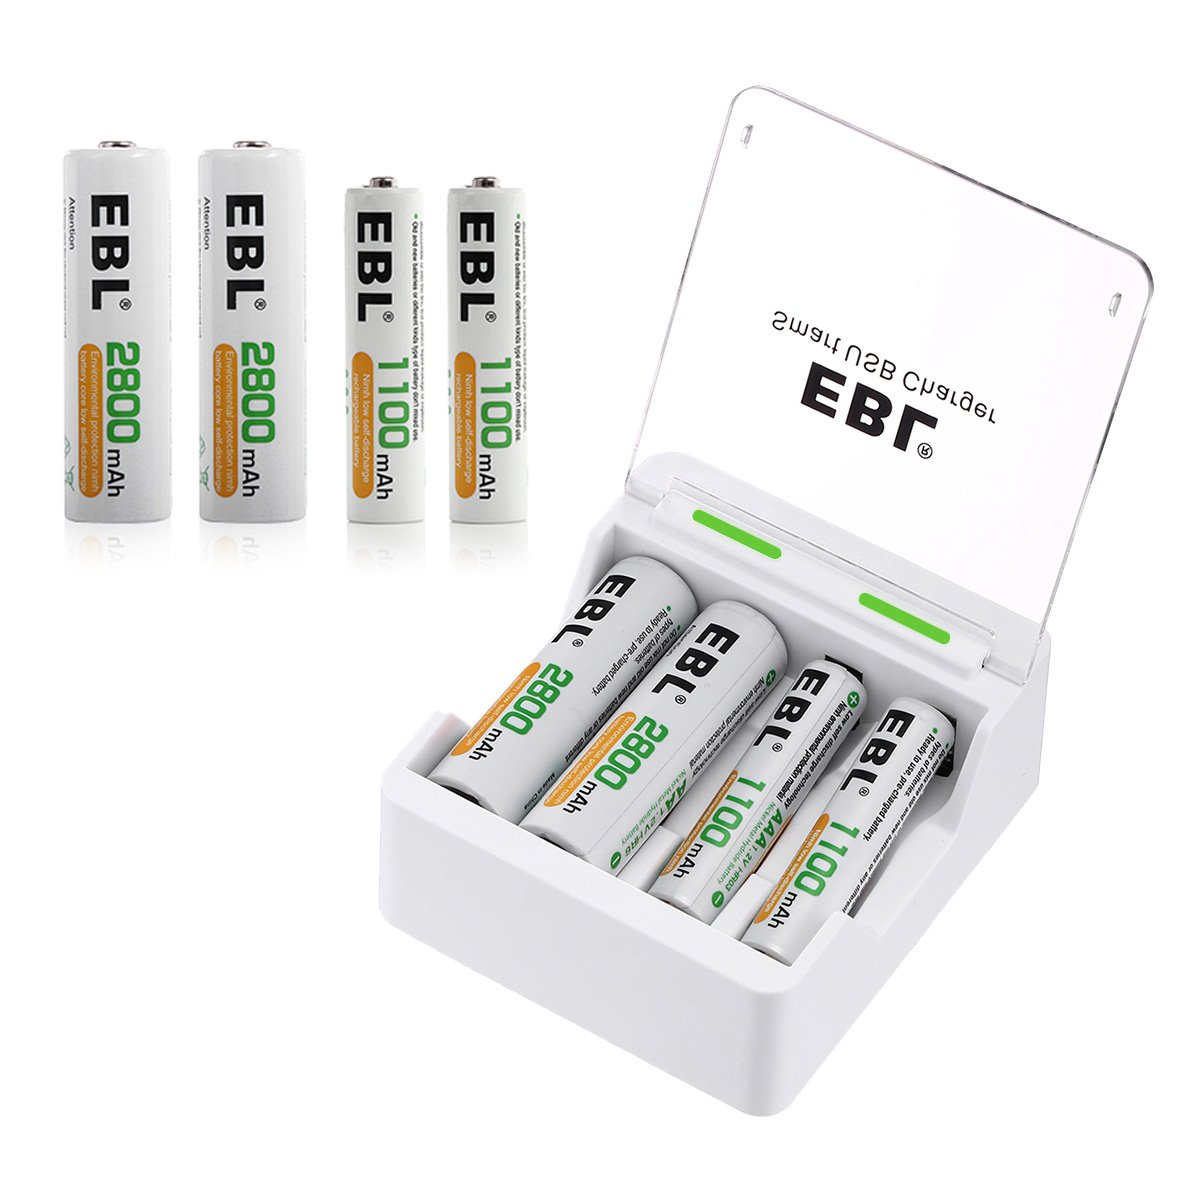 EBL Smart USB Charger with AA 2800mAh (4 Pack) and AAA 1100mAh (4 Pack) Ni-MH Rechargeable Batteries